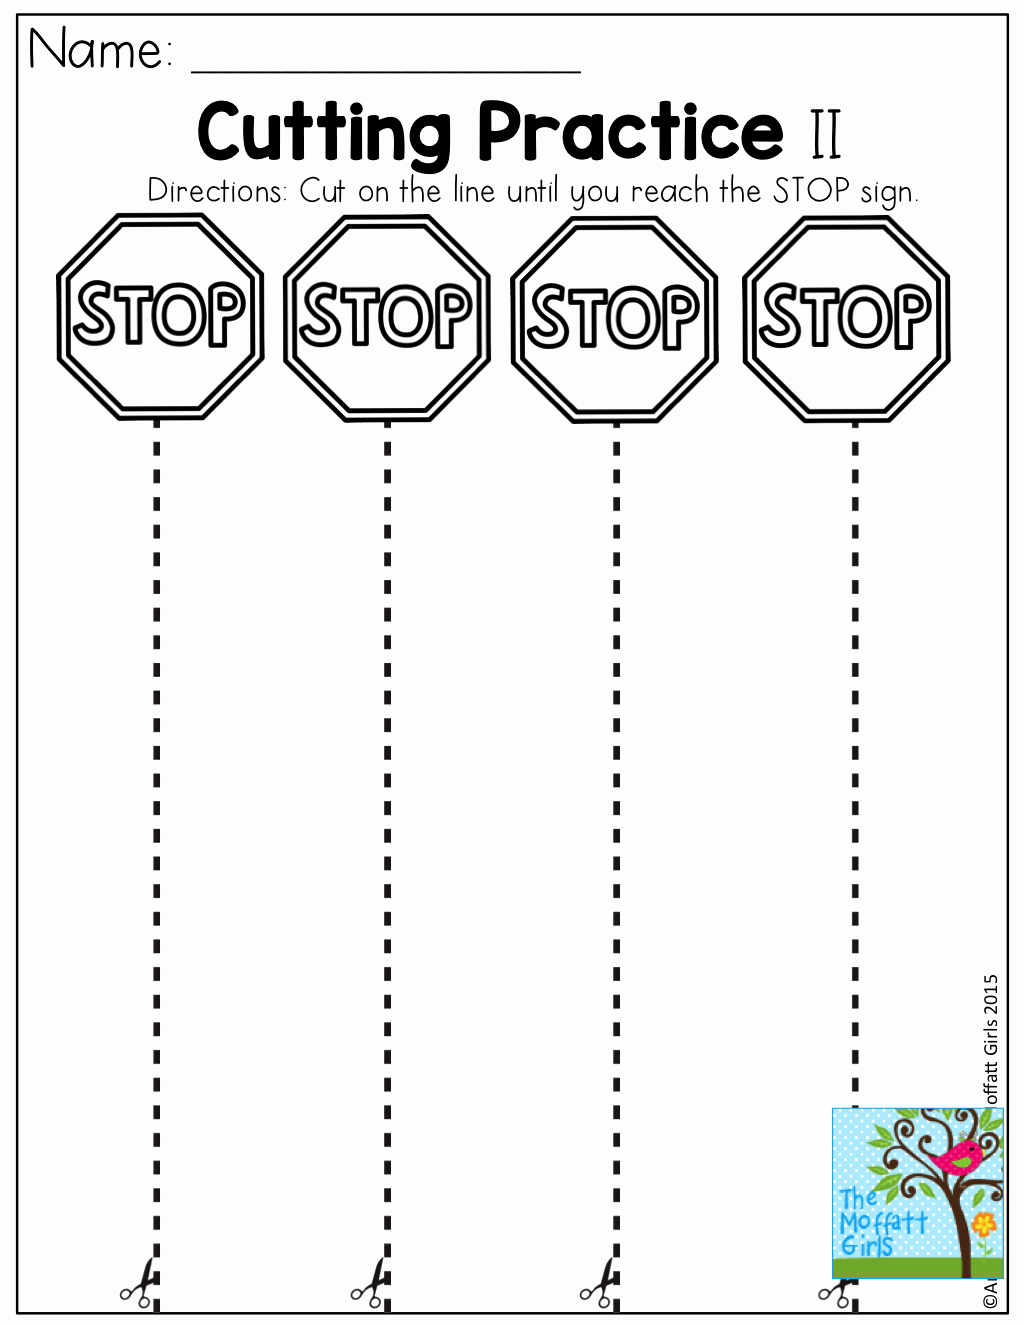 Free Printable Cutting Worksheets Luxury Cutting Practice Worksheets for Kindergarten Pdf